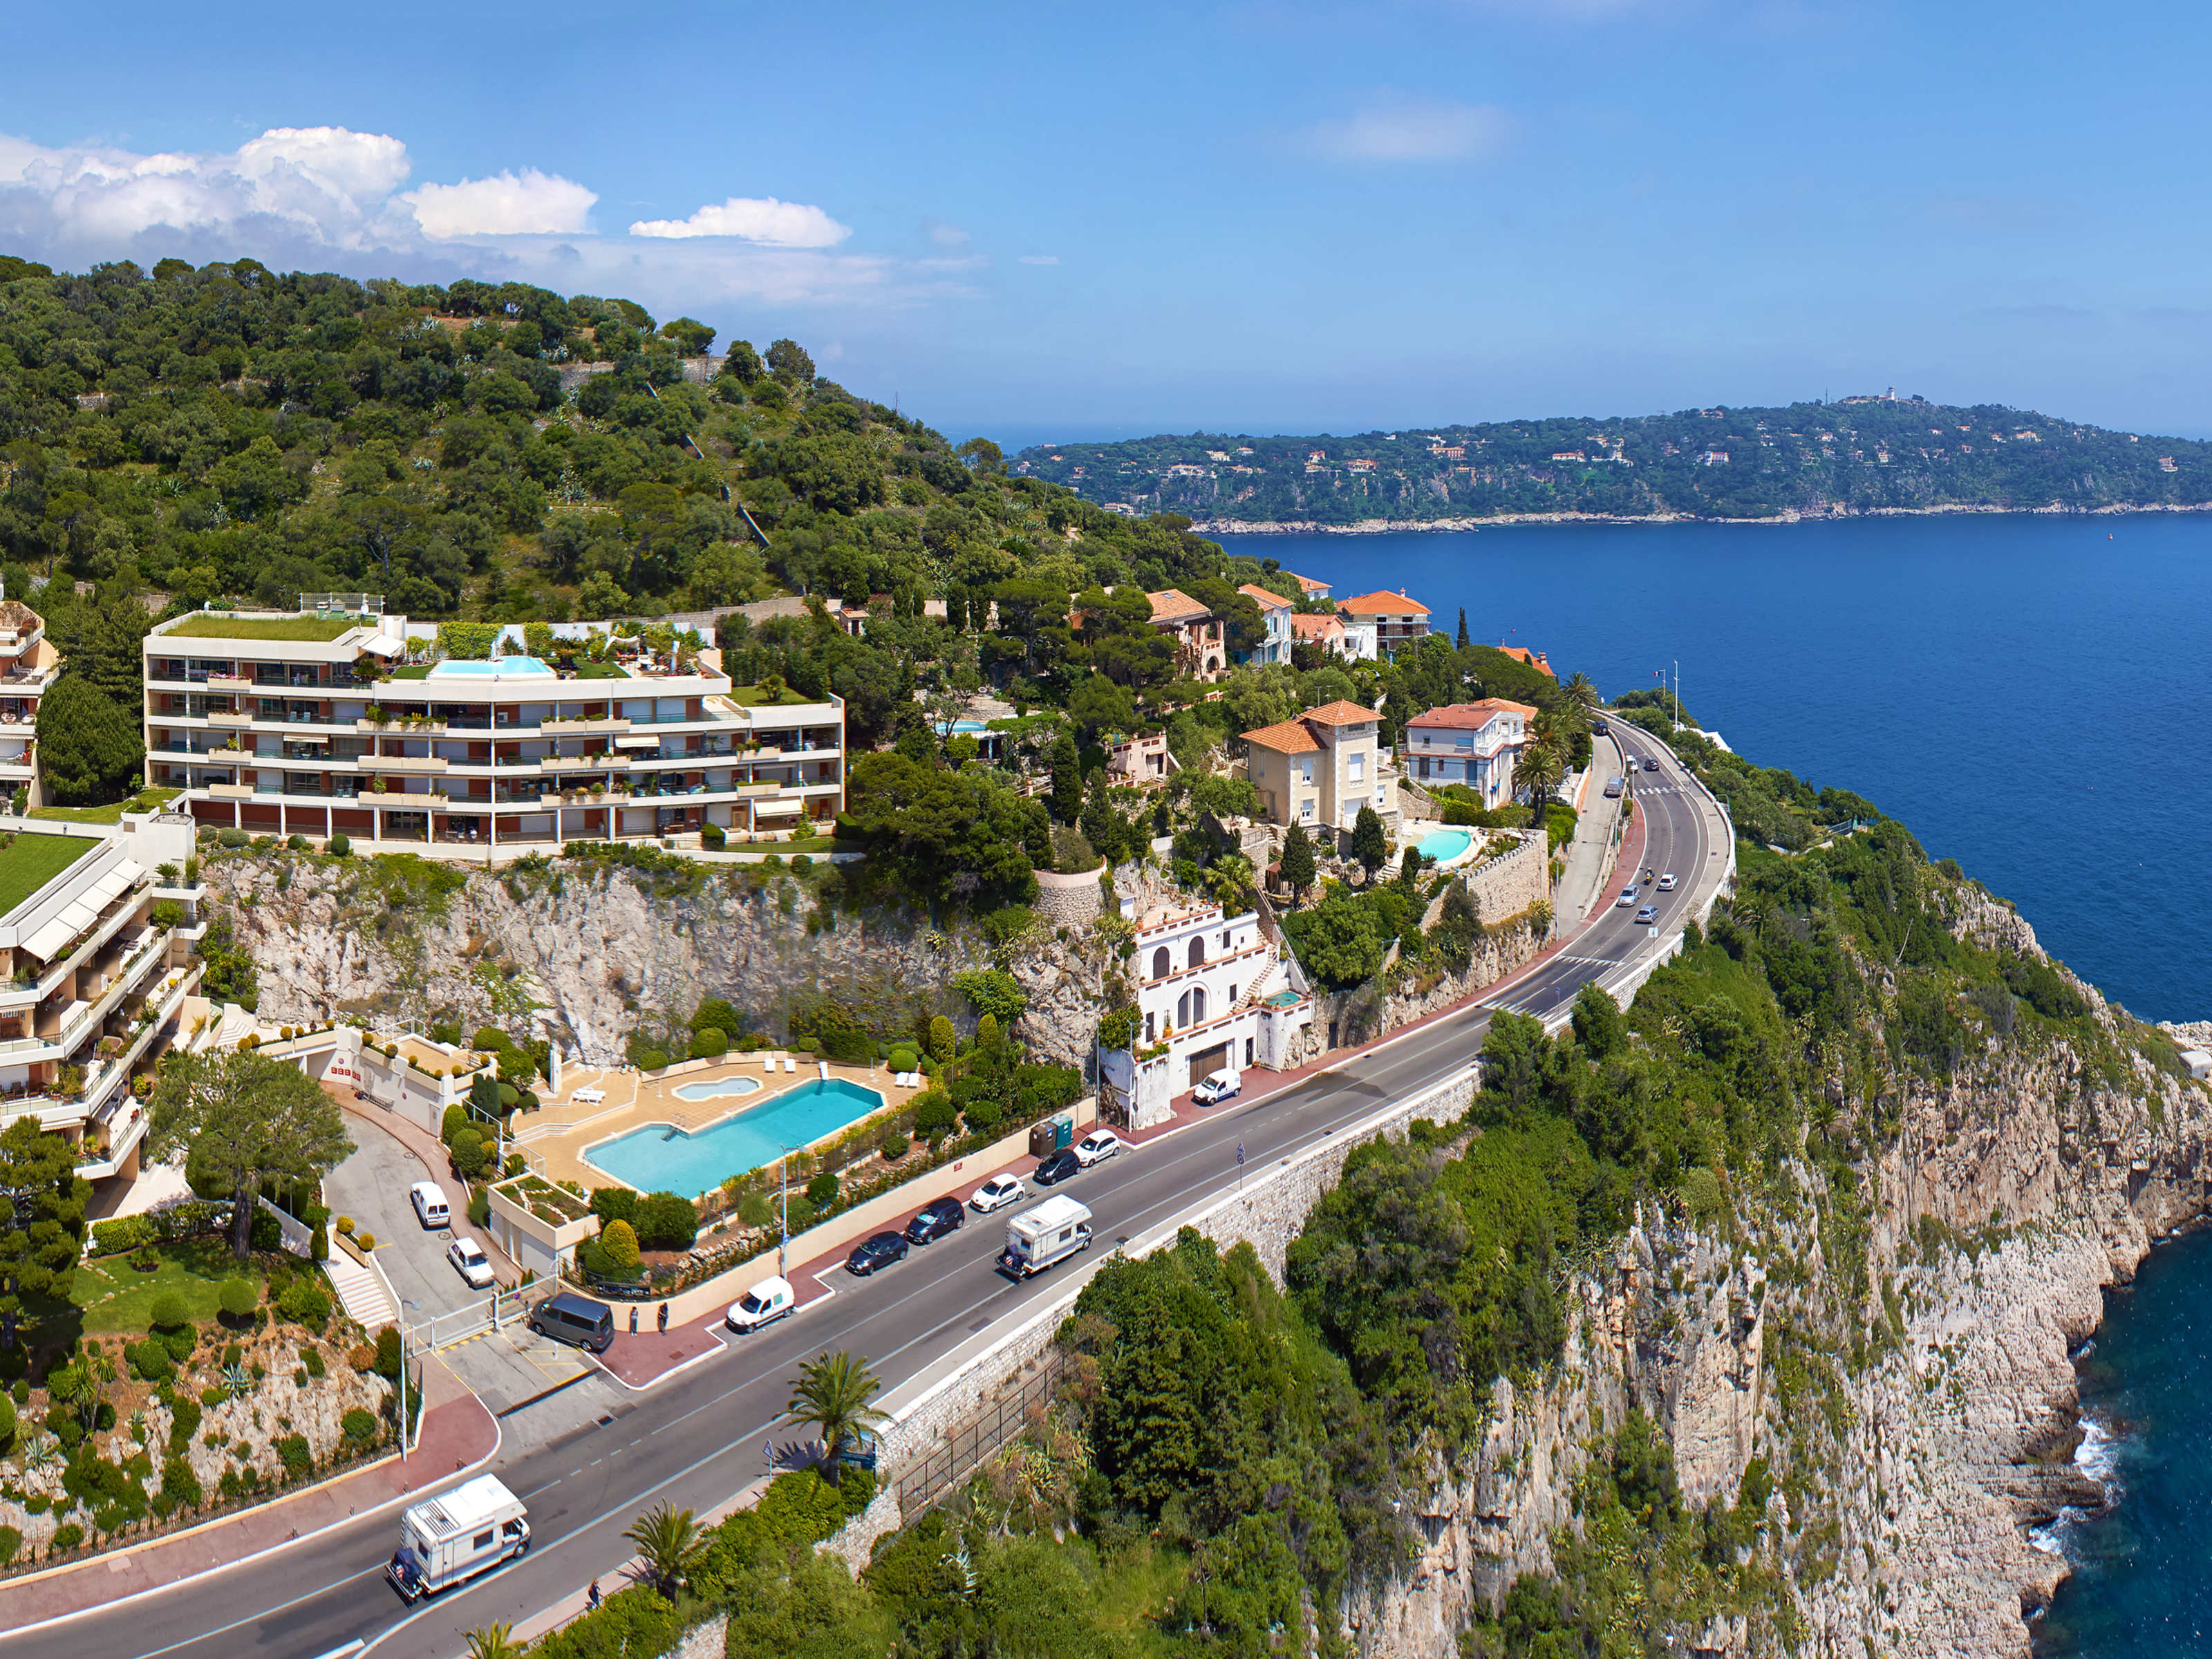 Apartment for Sale at Apartment Nice, Provence-Alpes-Cote D'Azur 06230 France